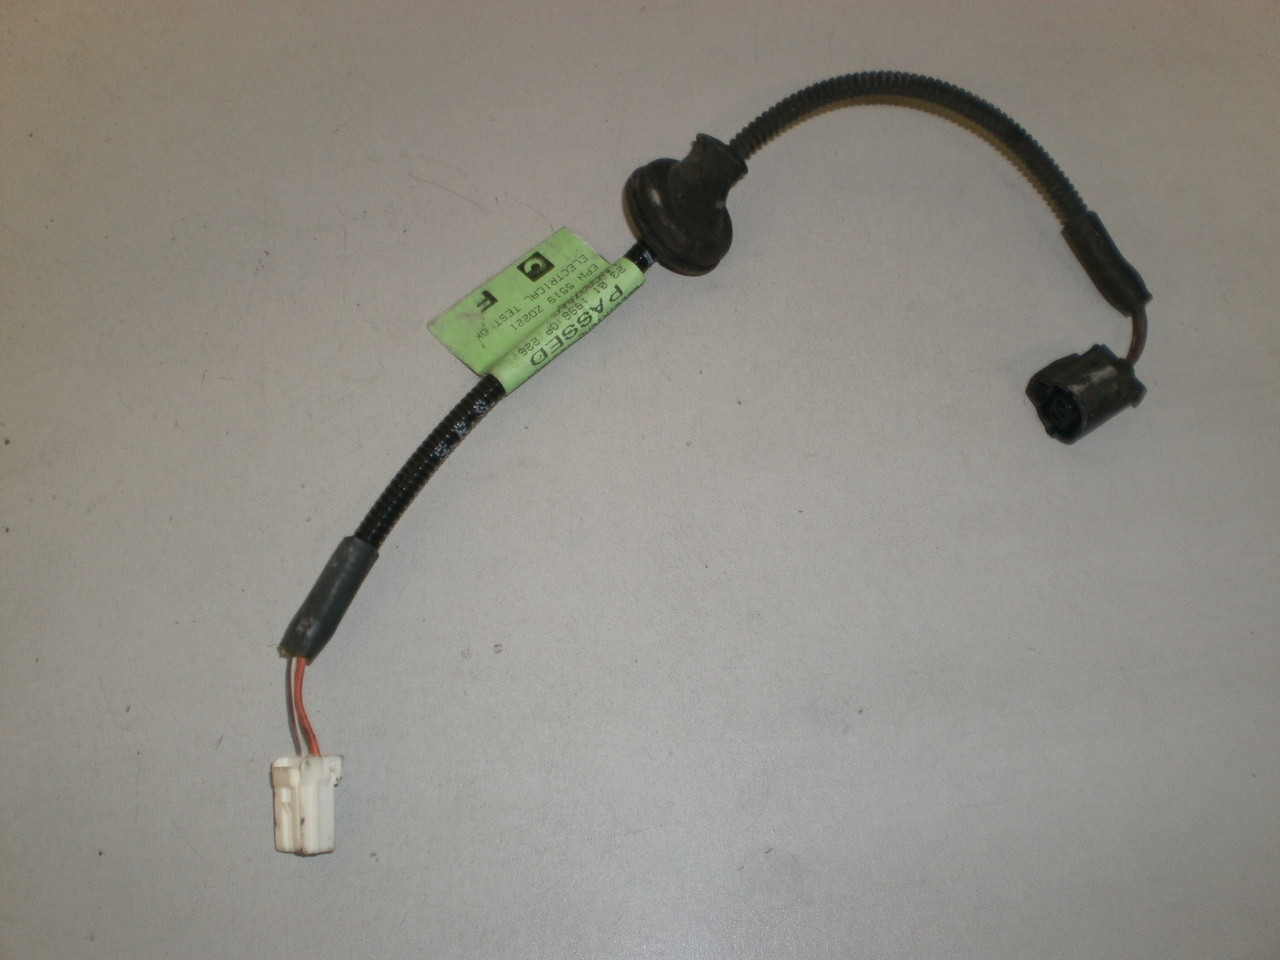 hight resolution of  jaguar xj8 vanden plas canister close valve wire harness price 39 98 image 1